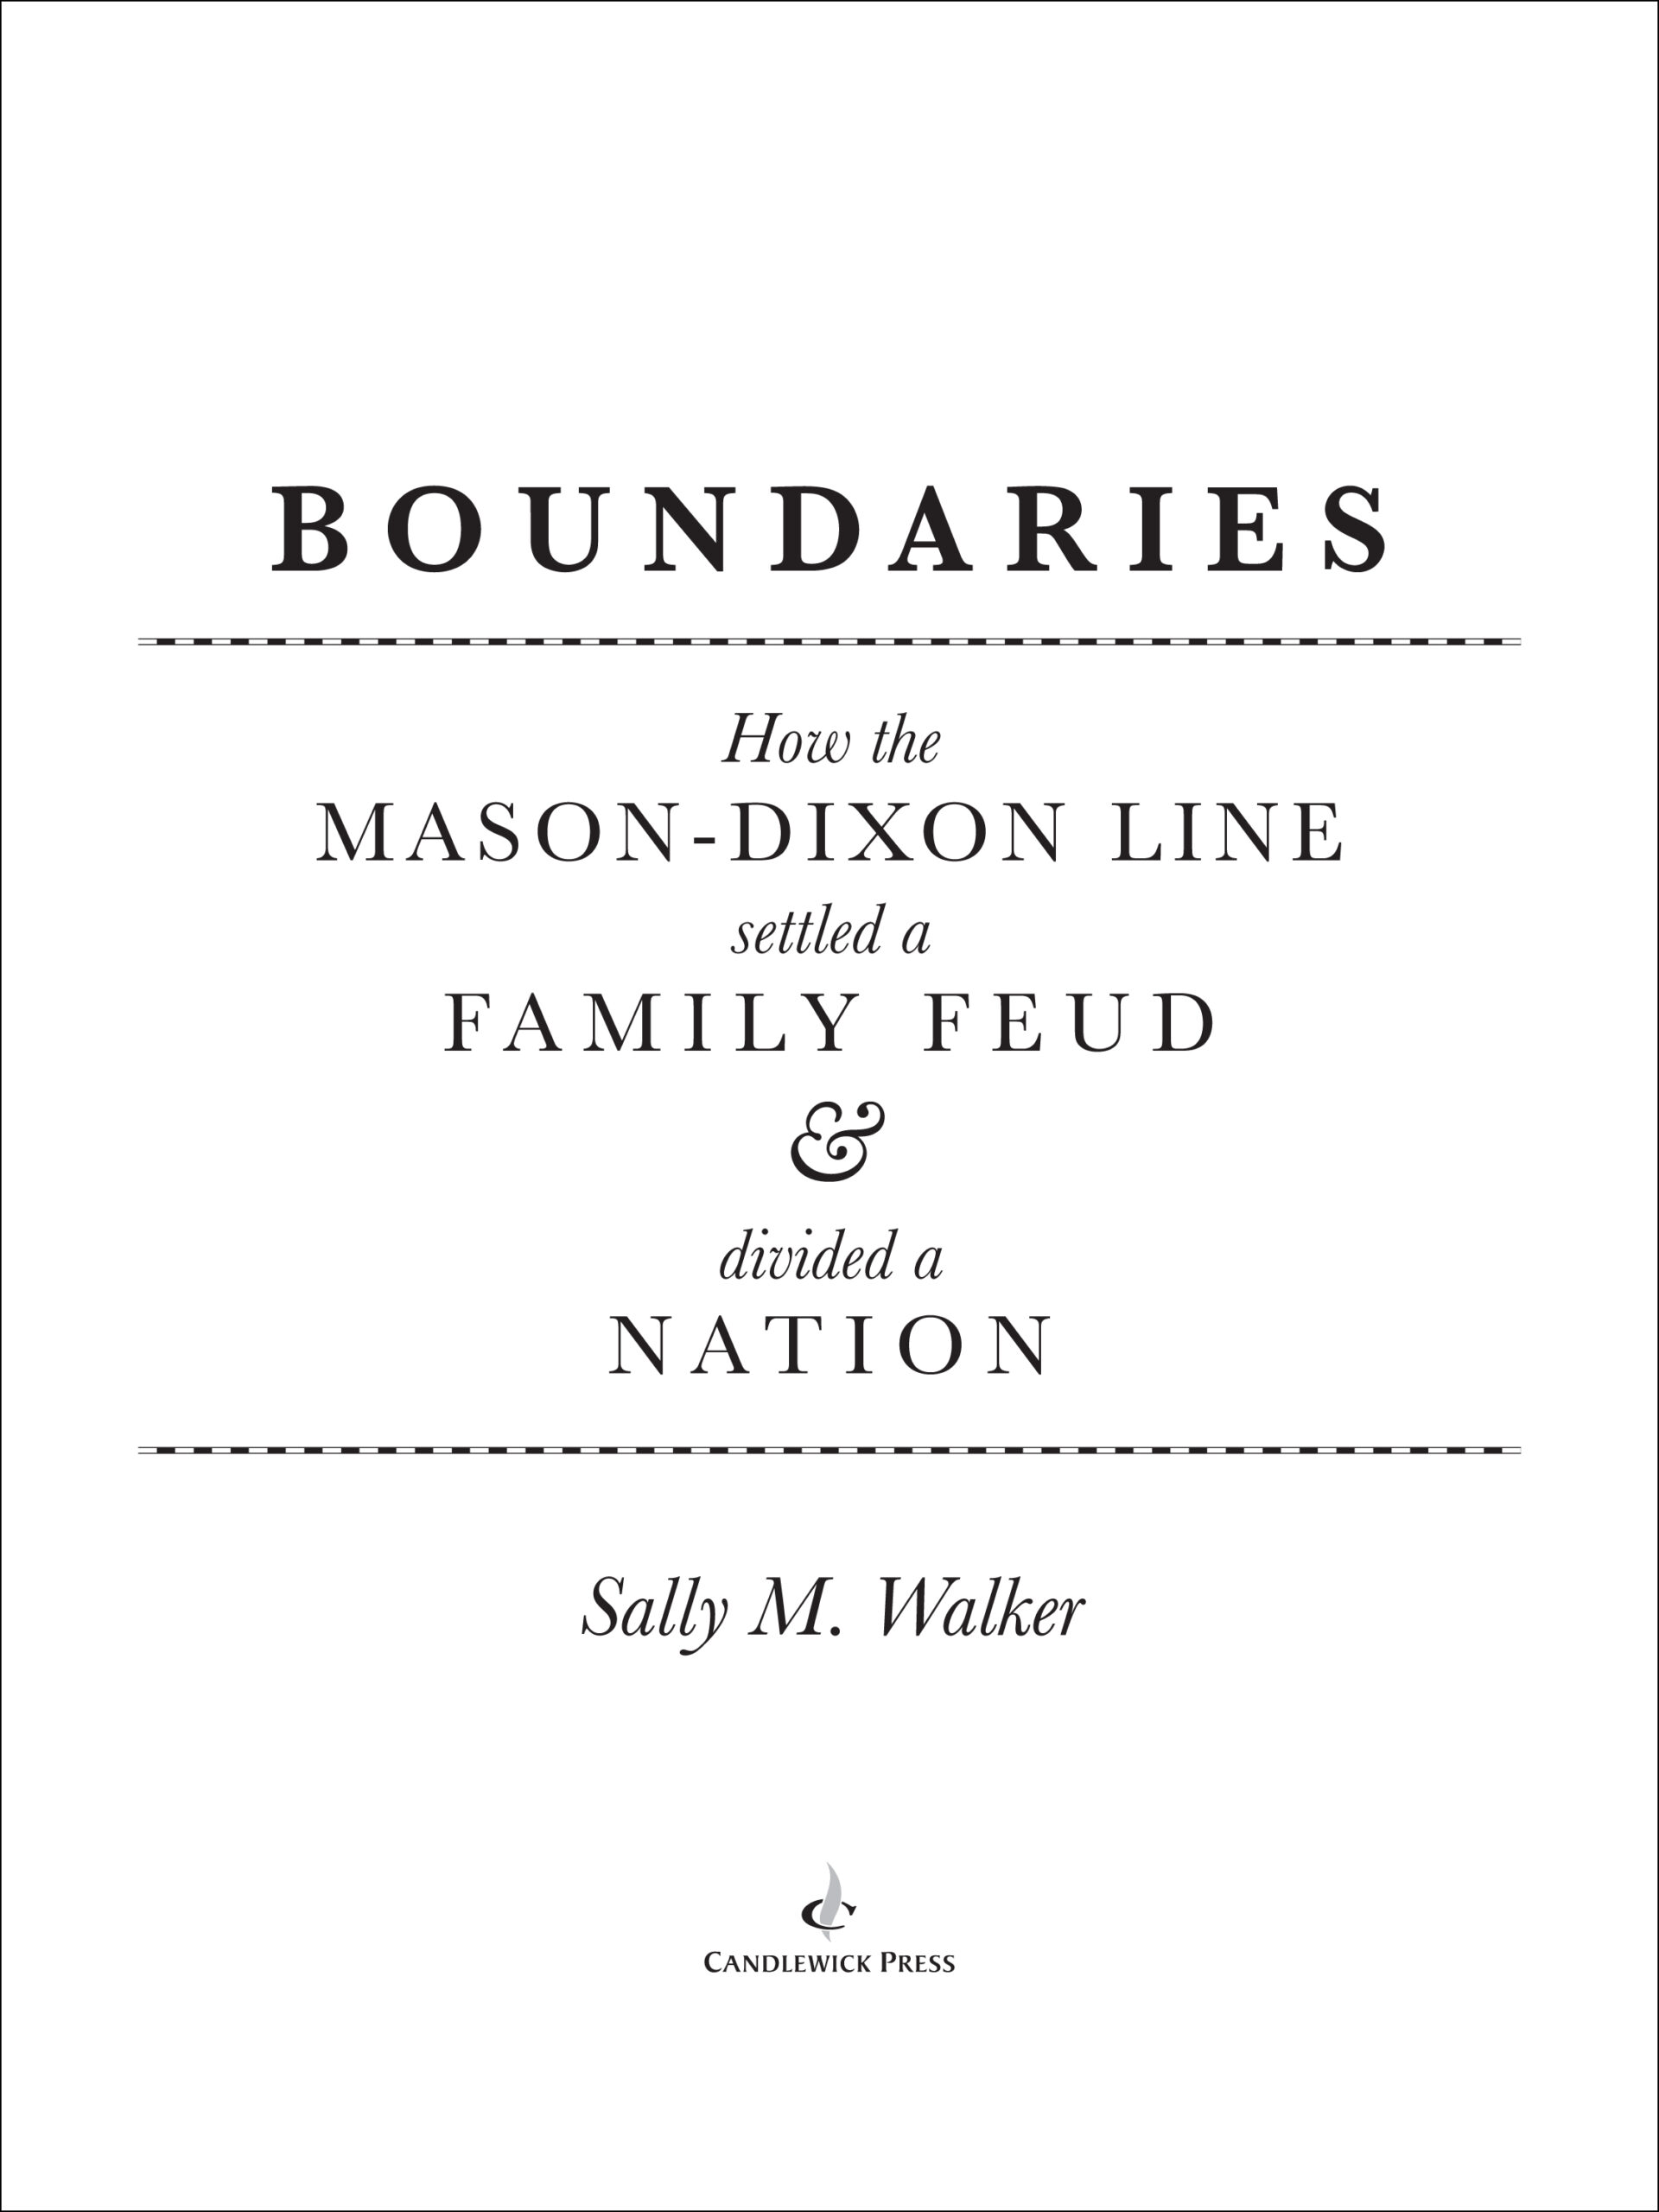 Title Page for BOUNDARIES